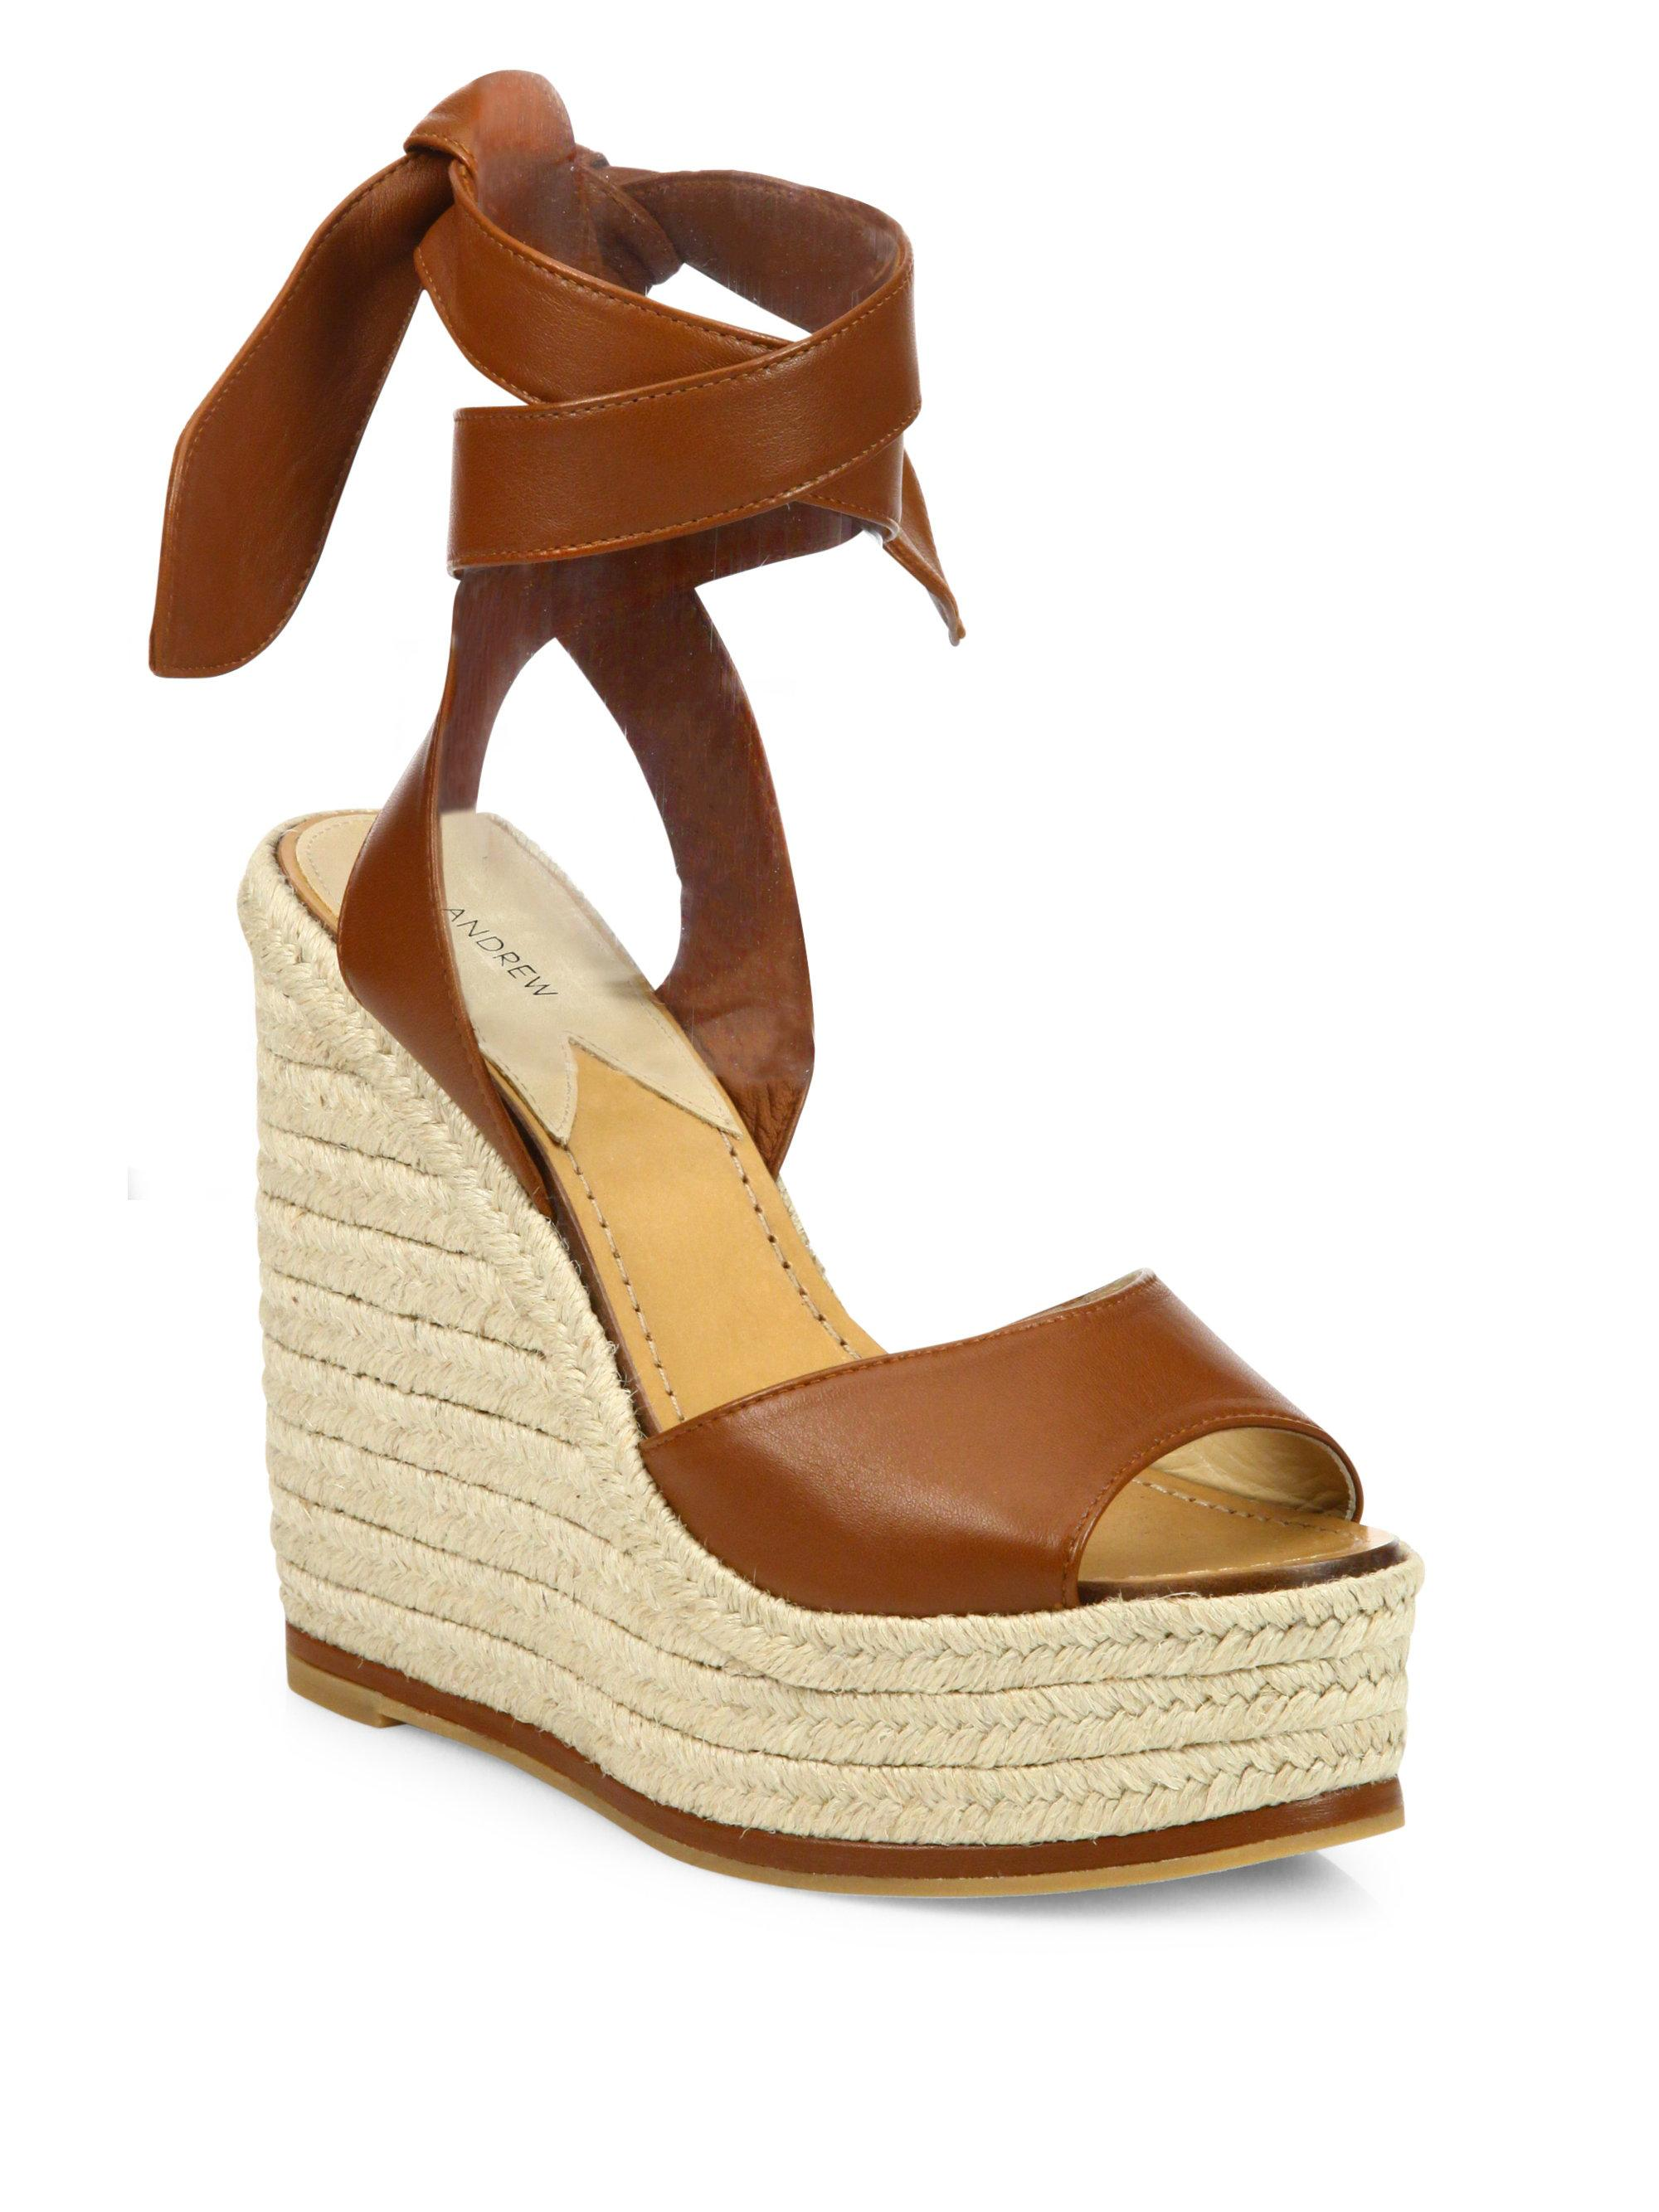 4fd8a3280ad Lyst - Paul Andrew Lulea Leather Espadrille Wedge Sandals in Brown